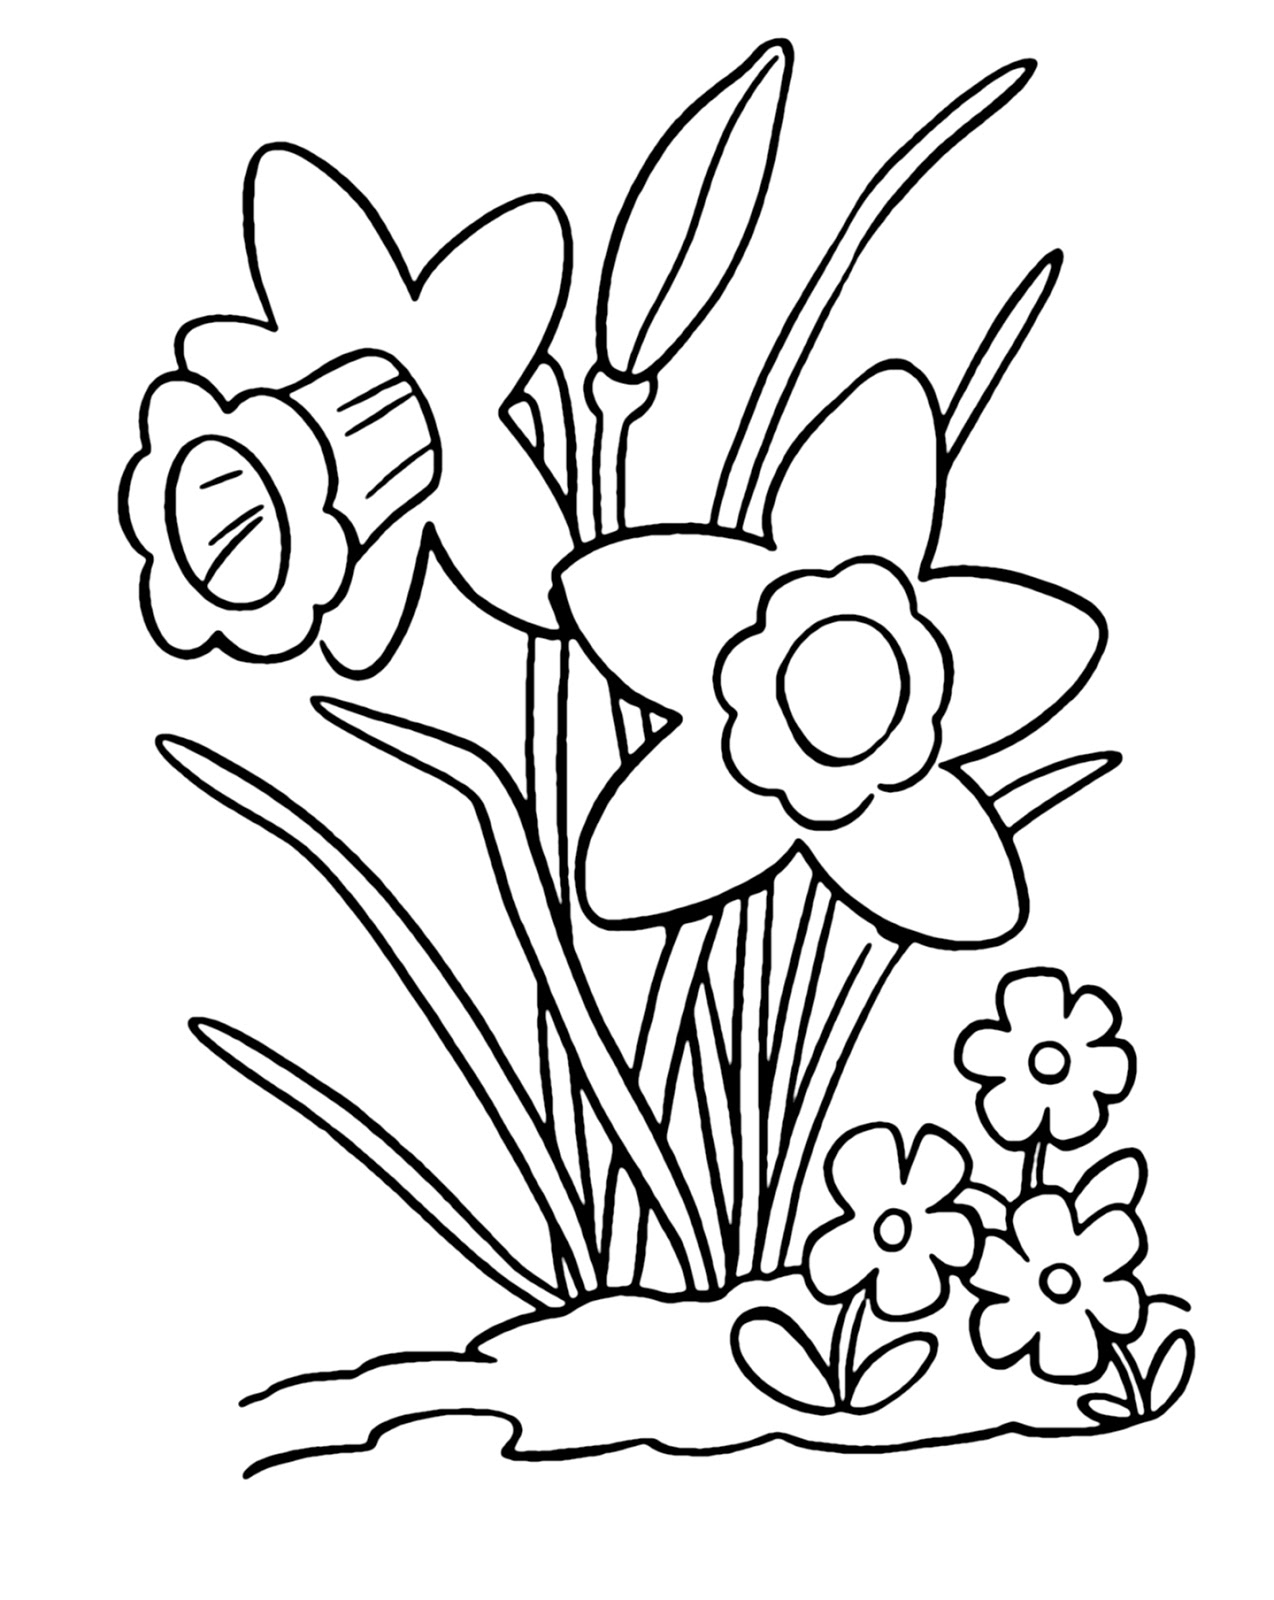 coloring clipart for kids daffodil coloring pages best coloring pages for kids clipart coloring kids for